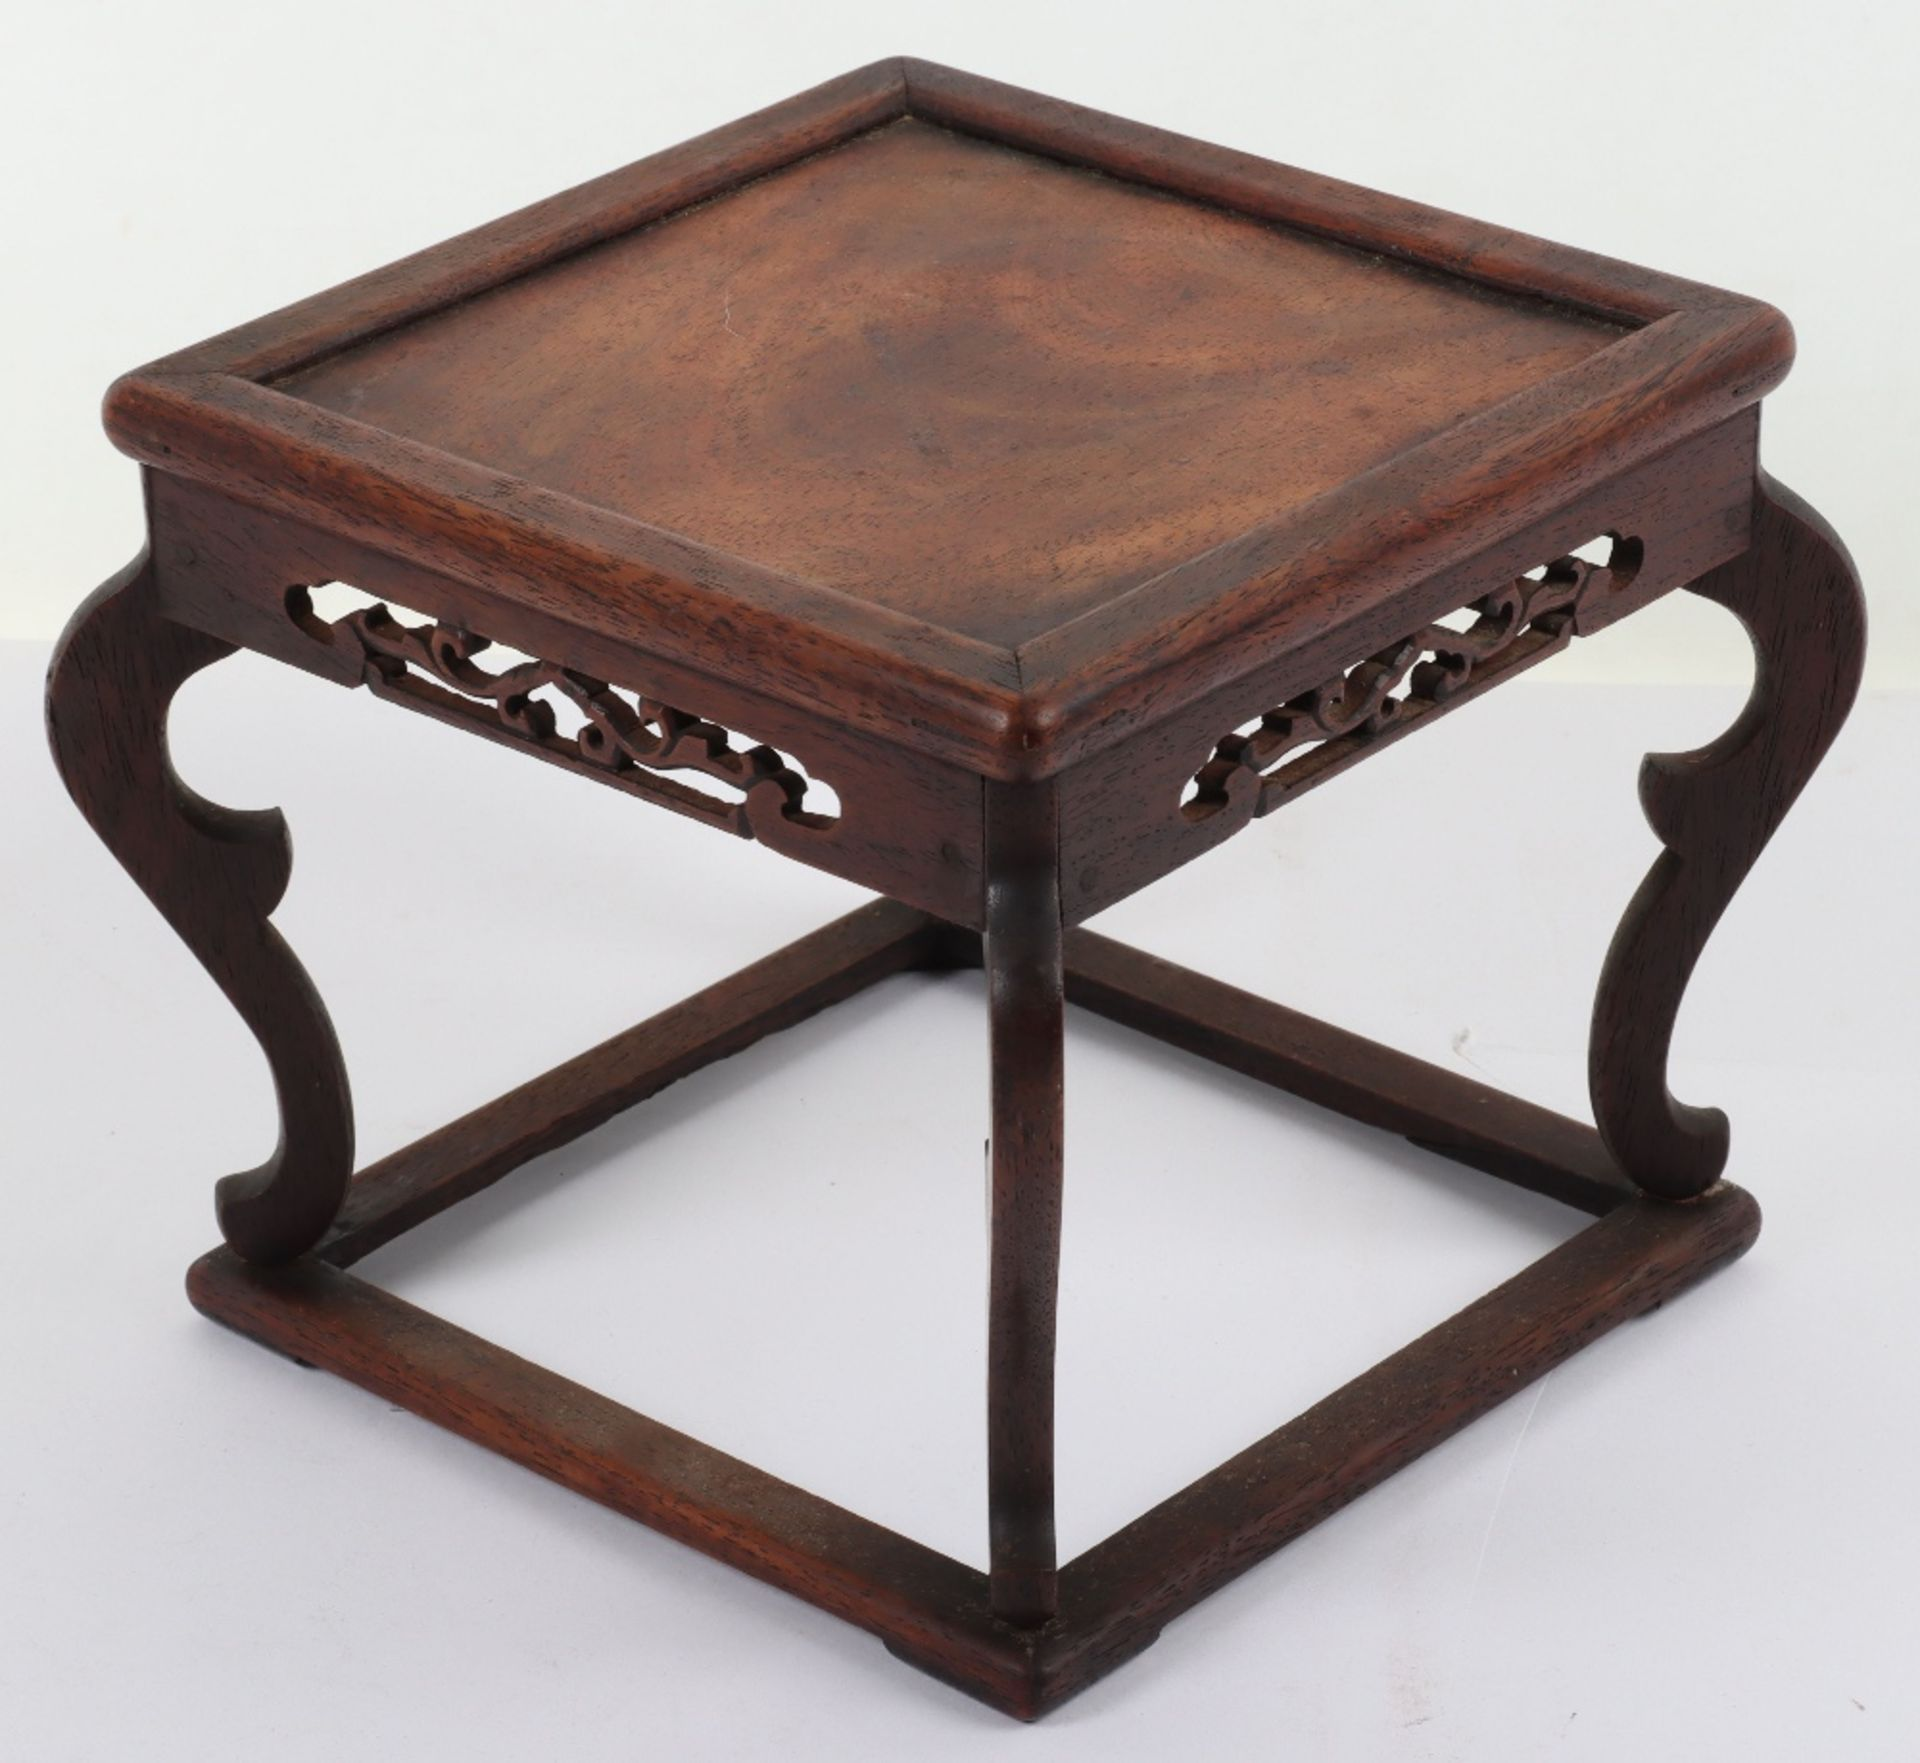 A 19th century small Chinese hardwood carved candle stand - Image 3 of 6